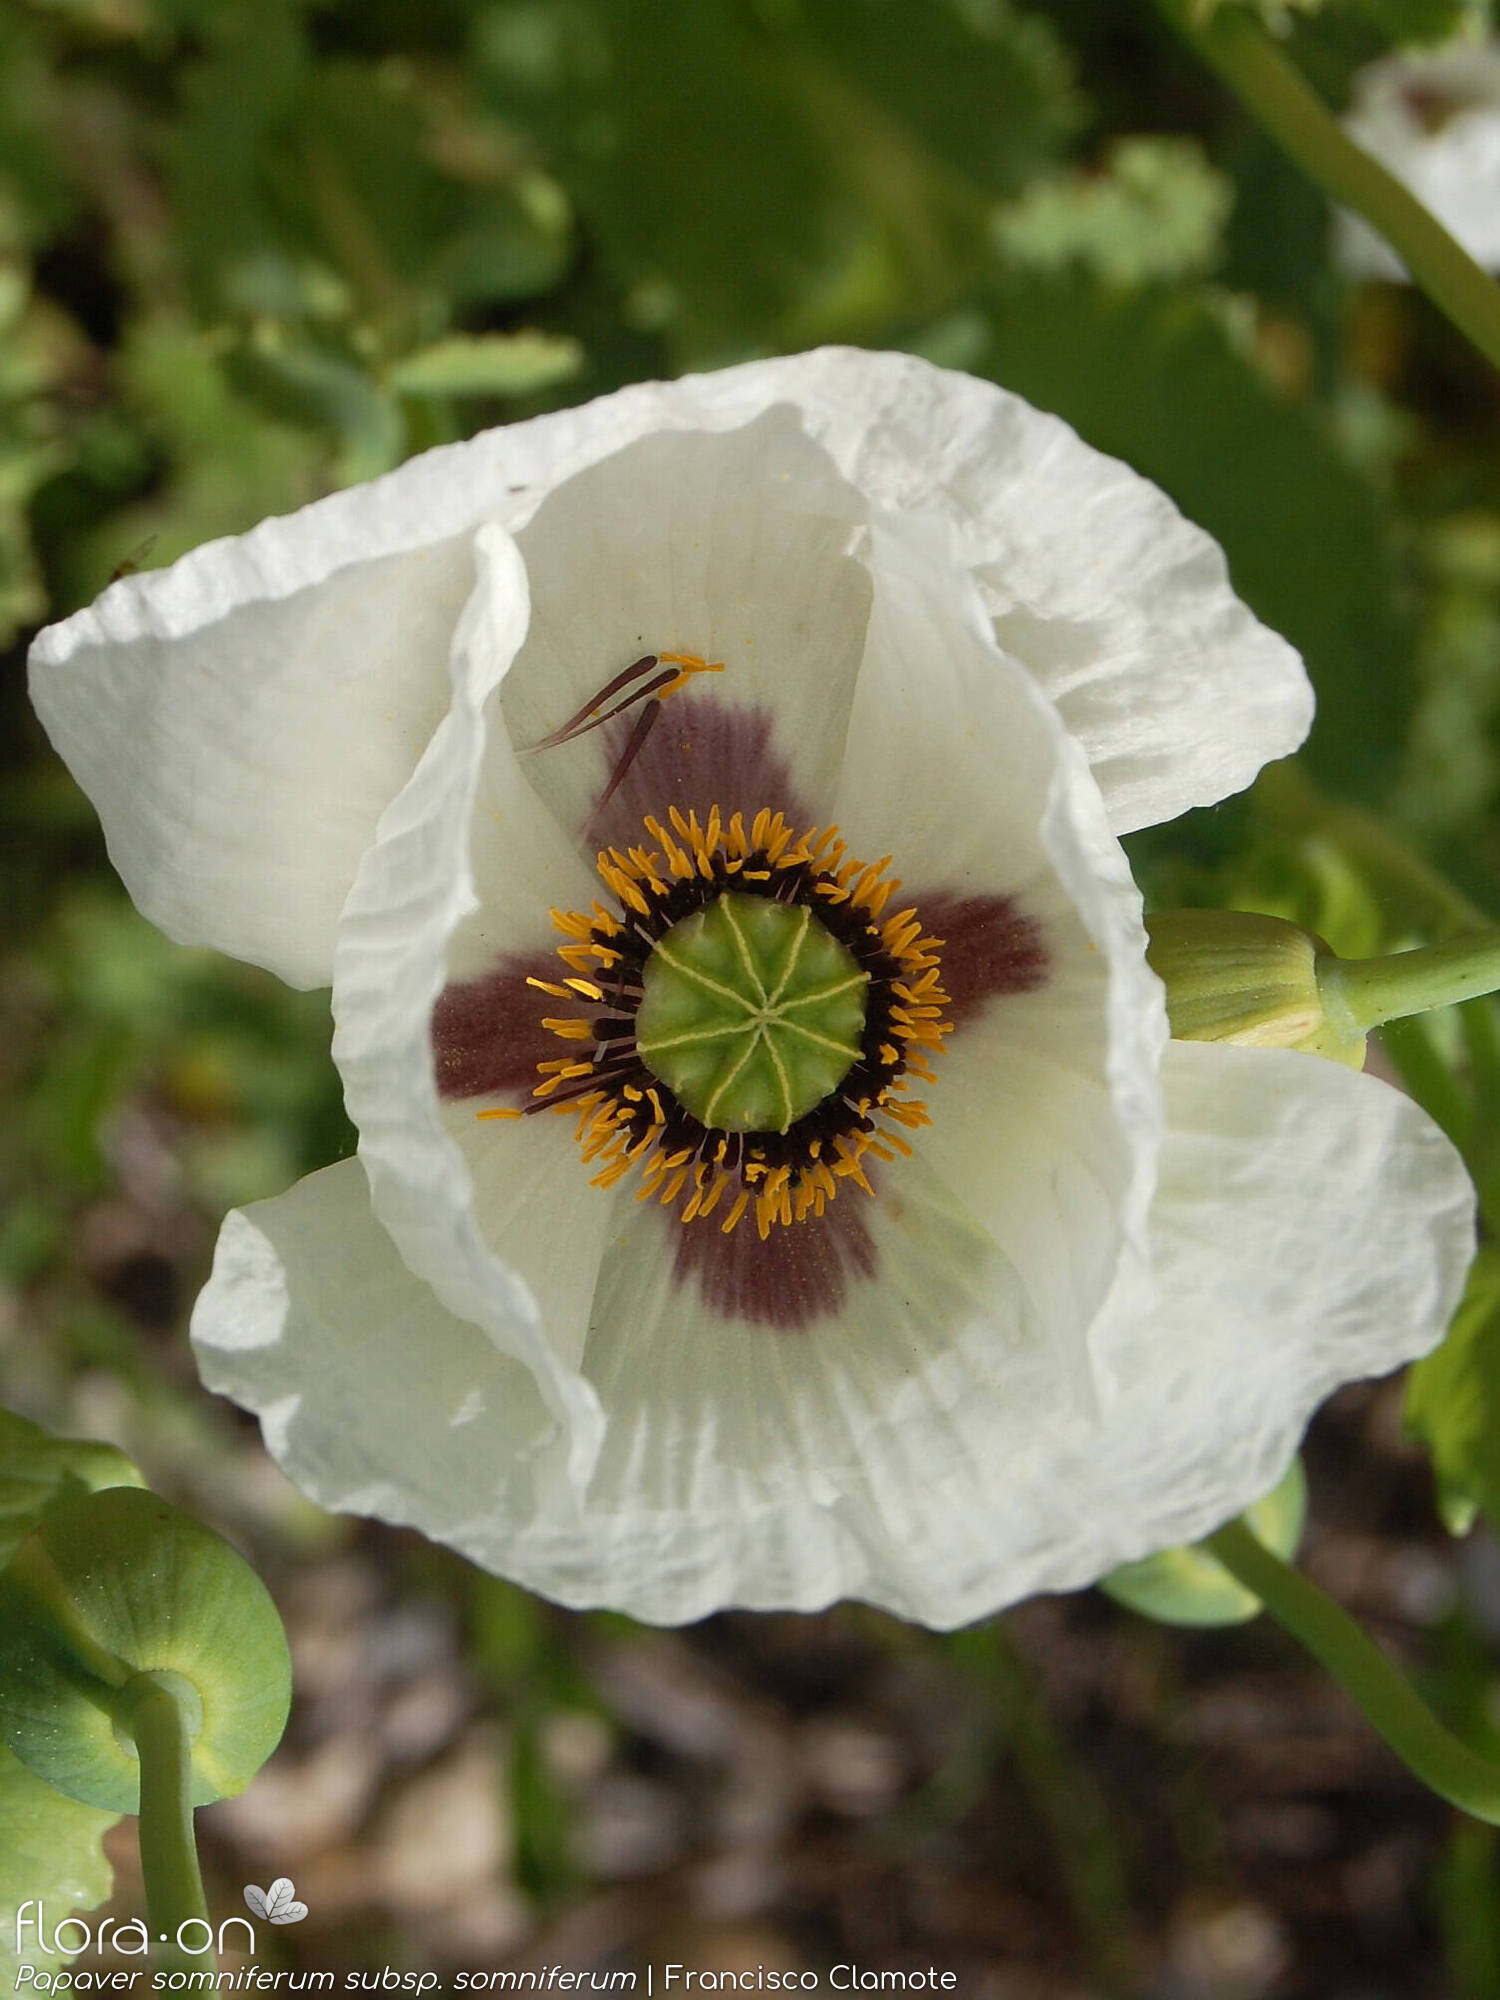 Papaver somniferum somniferum - Flor (close-up) | Francisco Clamote; CC BY-NC 4.0